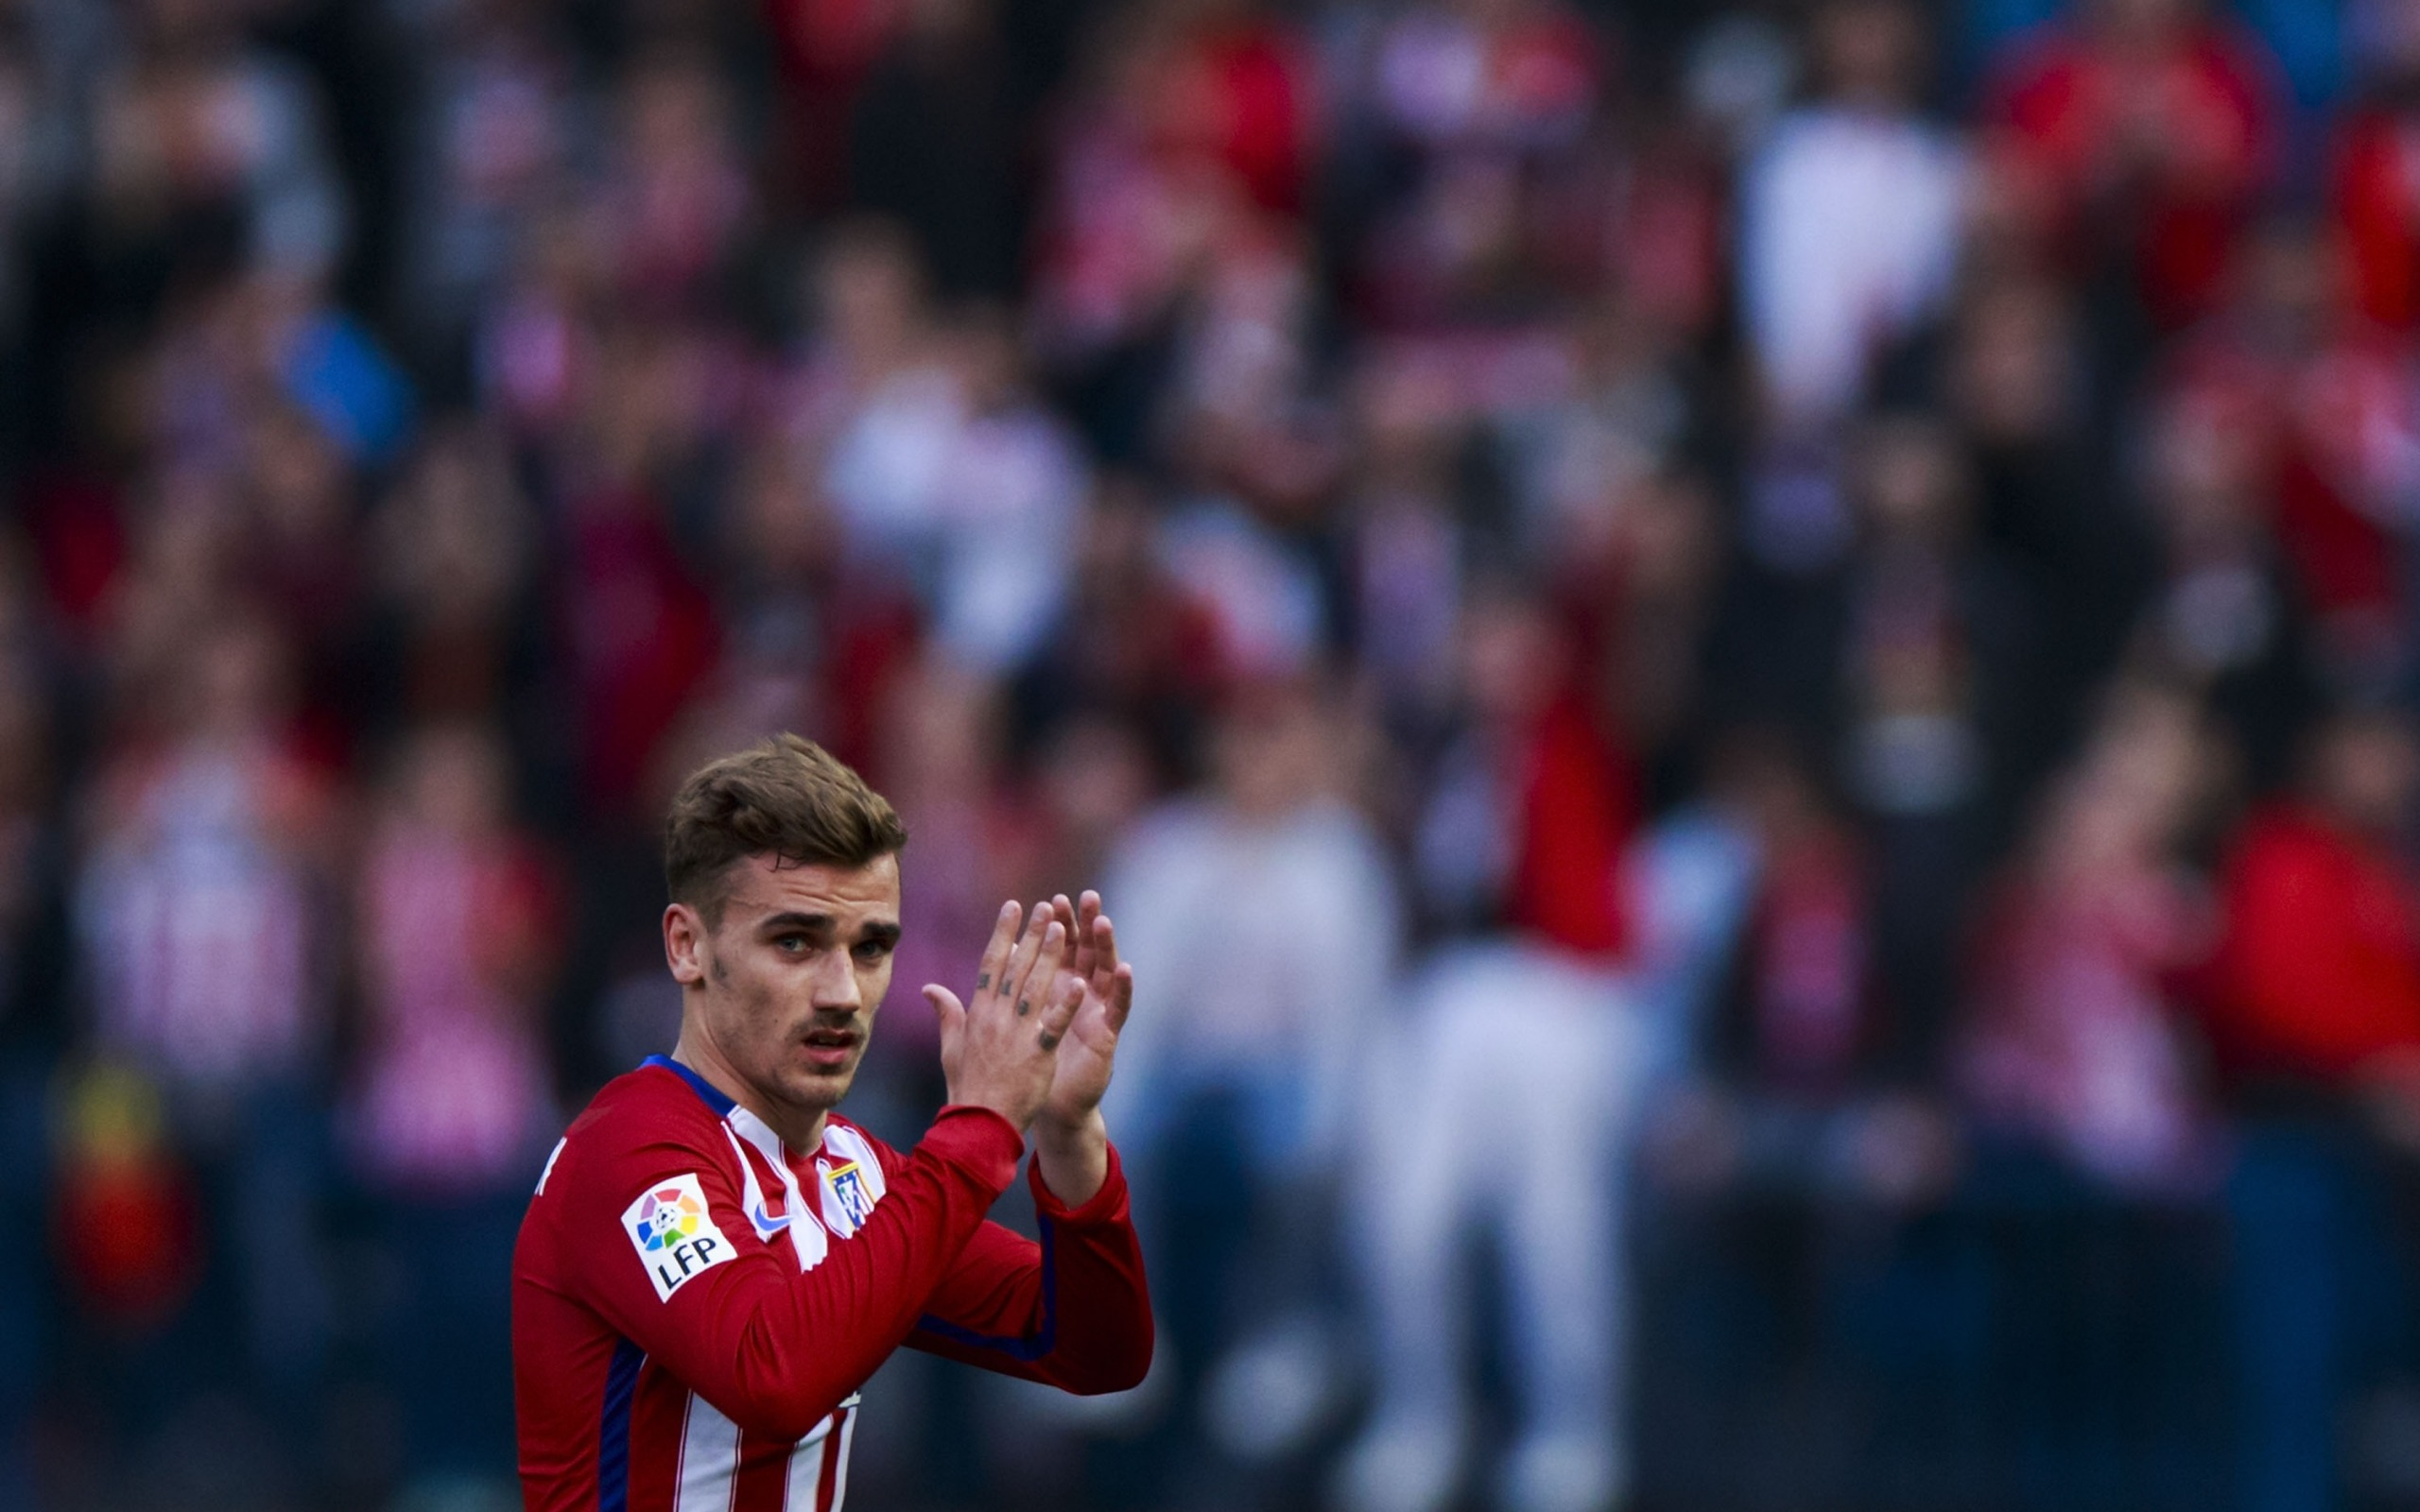 Cute Animated Wallpapers Hd Antoine Griezmann Wallpaper Hd